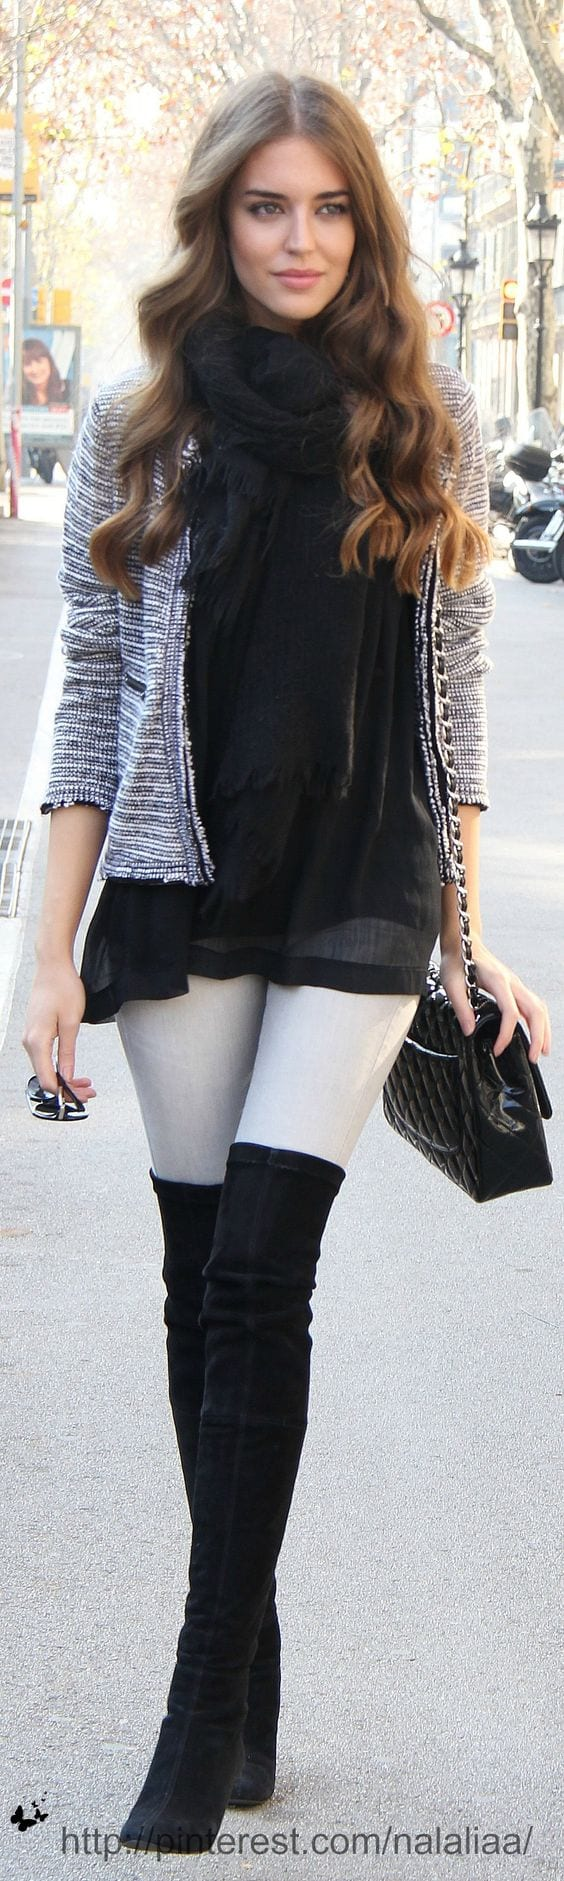 Cute Outfits For Women With Curly Hair (13)